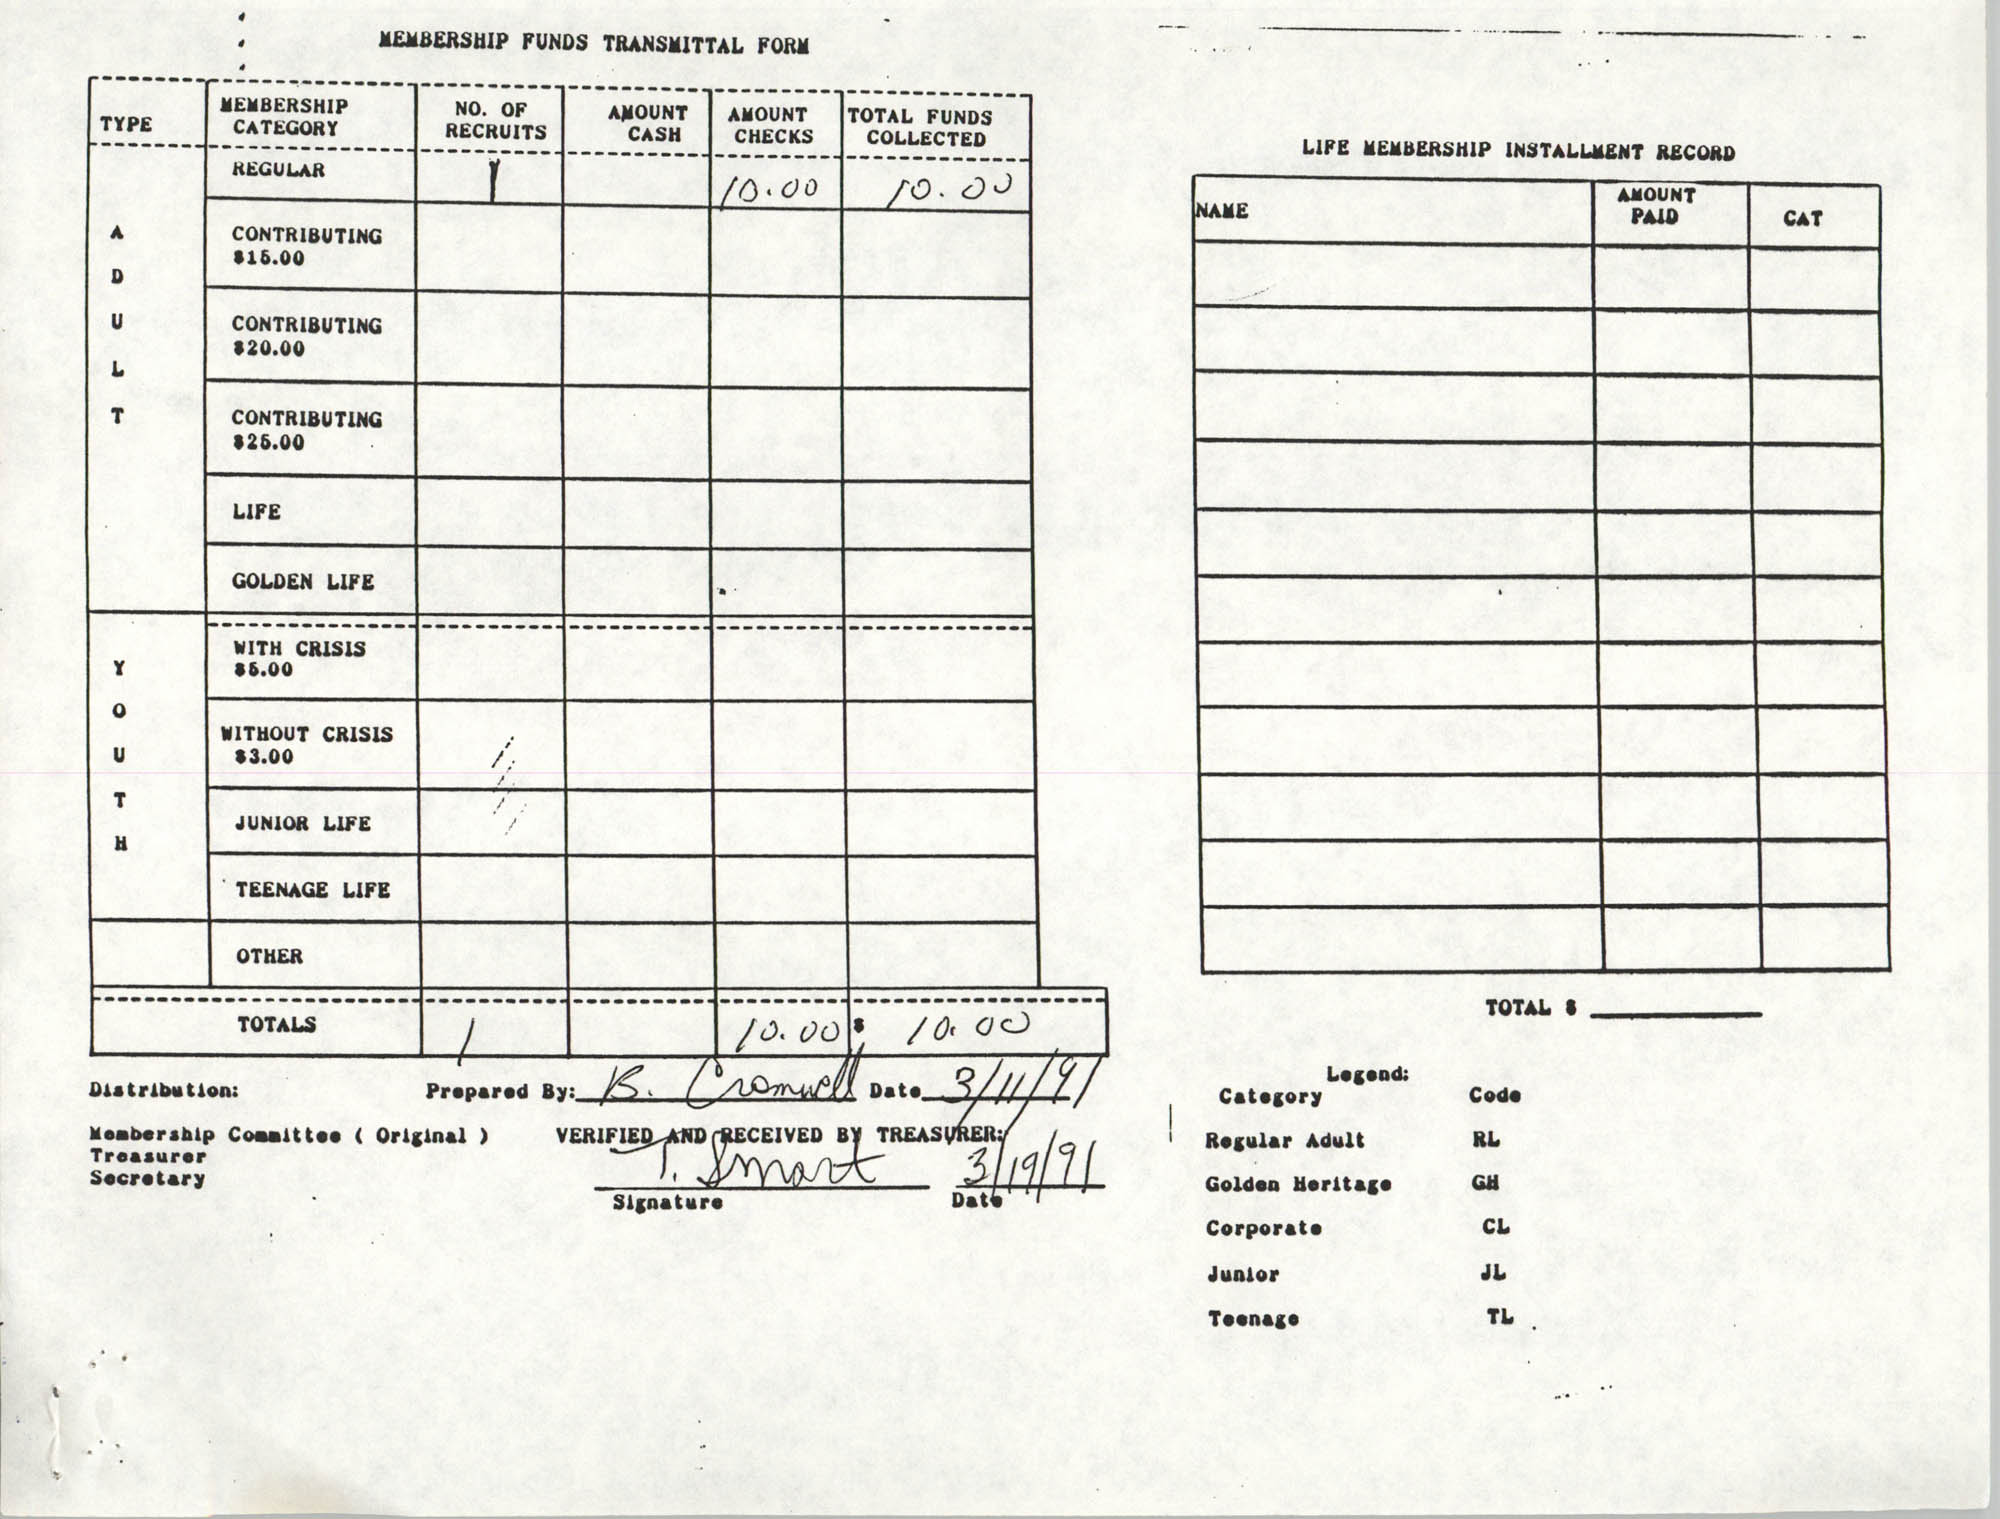 Charleston Branch of the NAACP Funds Transmittal Forms, March 1991, Page 8